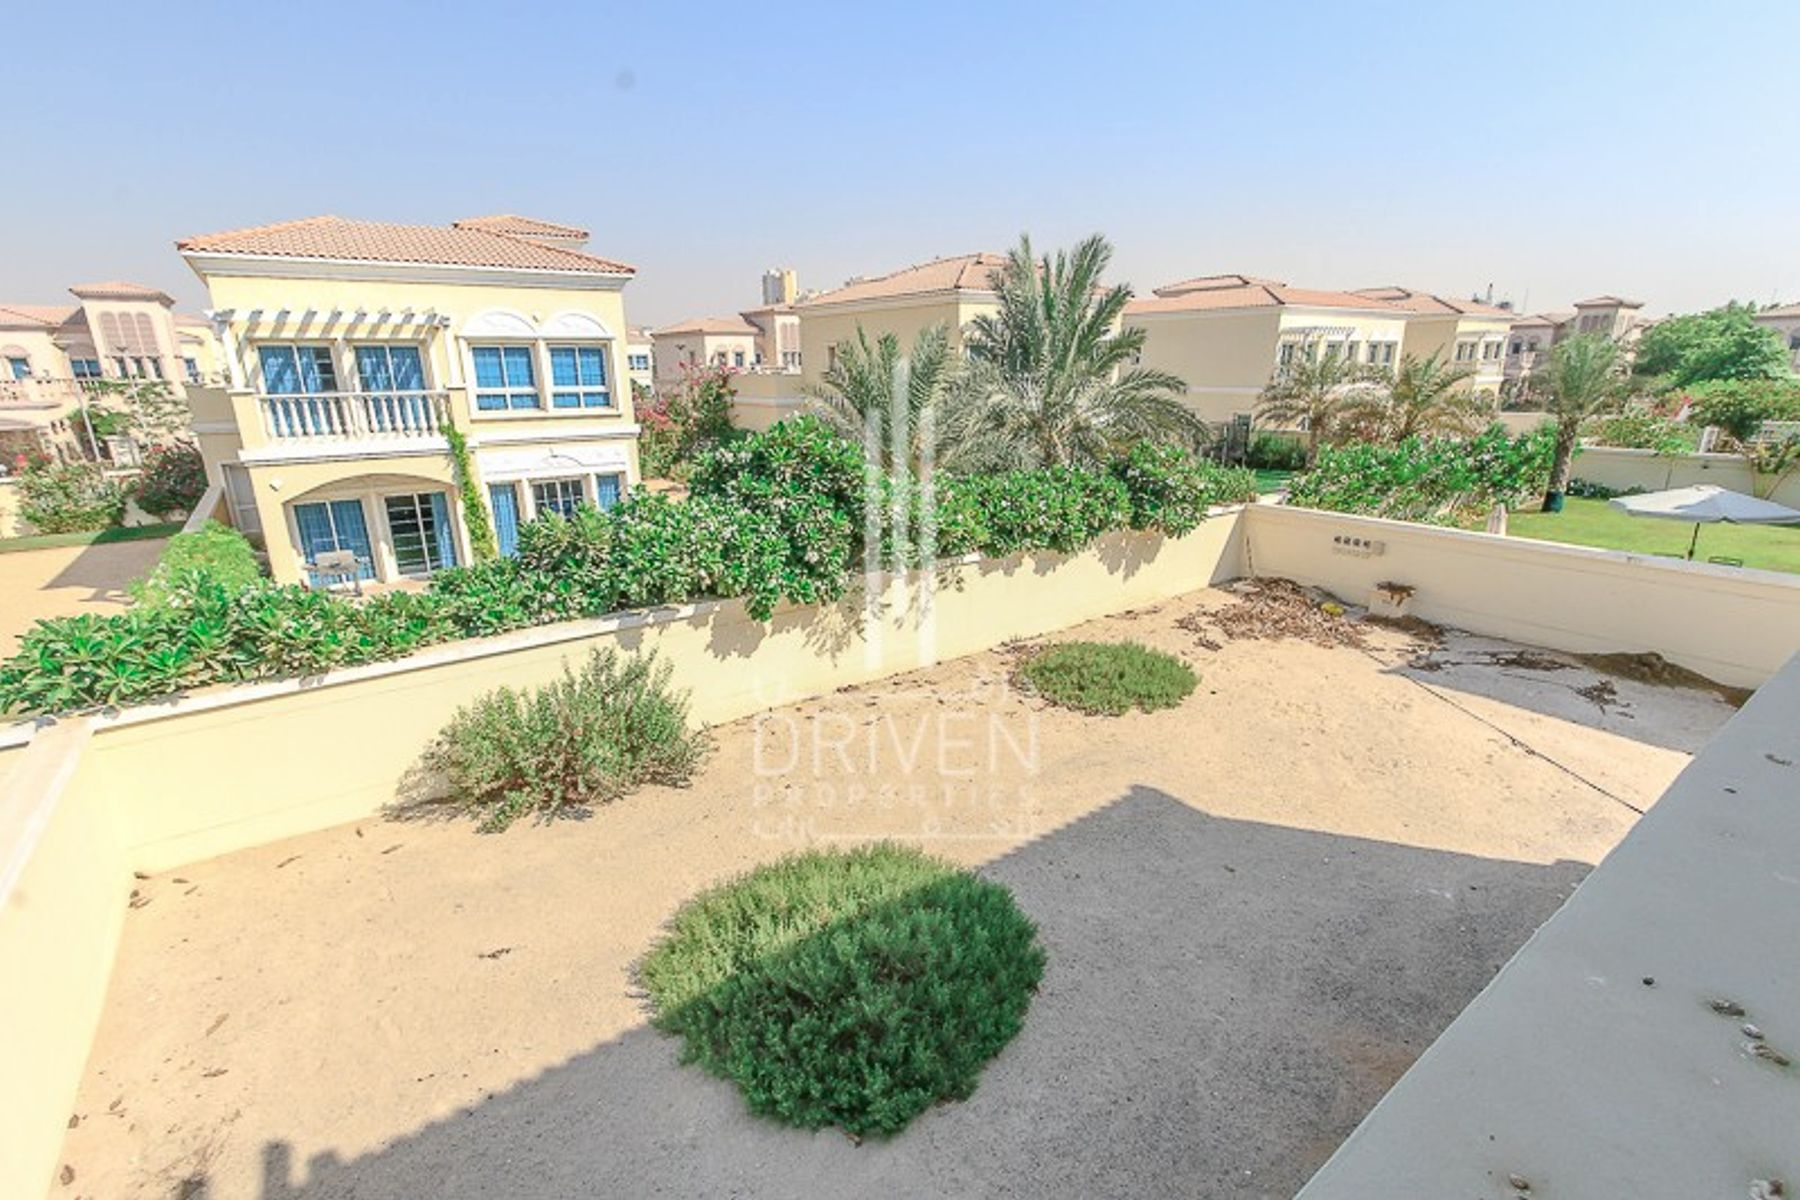 Villa for Sale in District 9F - Jumeirah Village Triangle